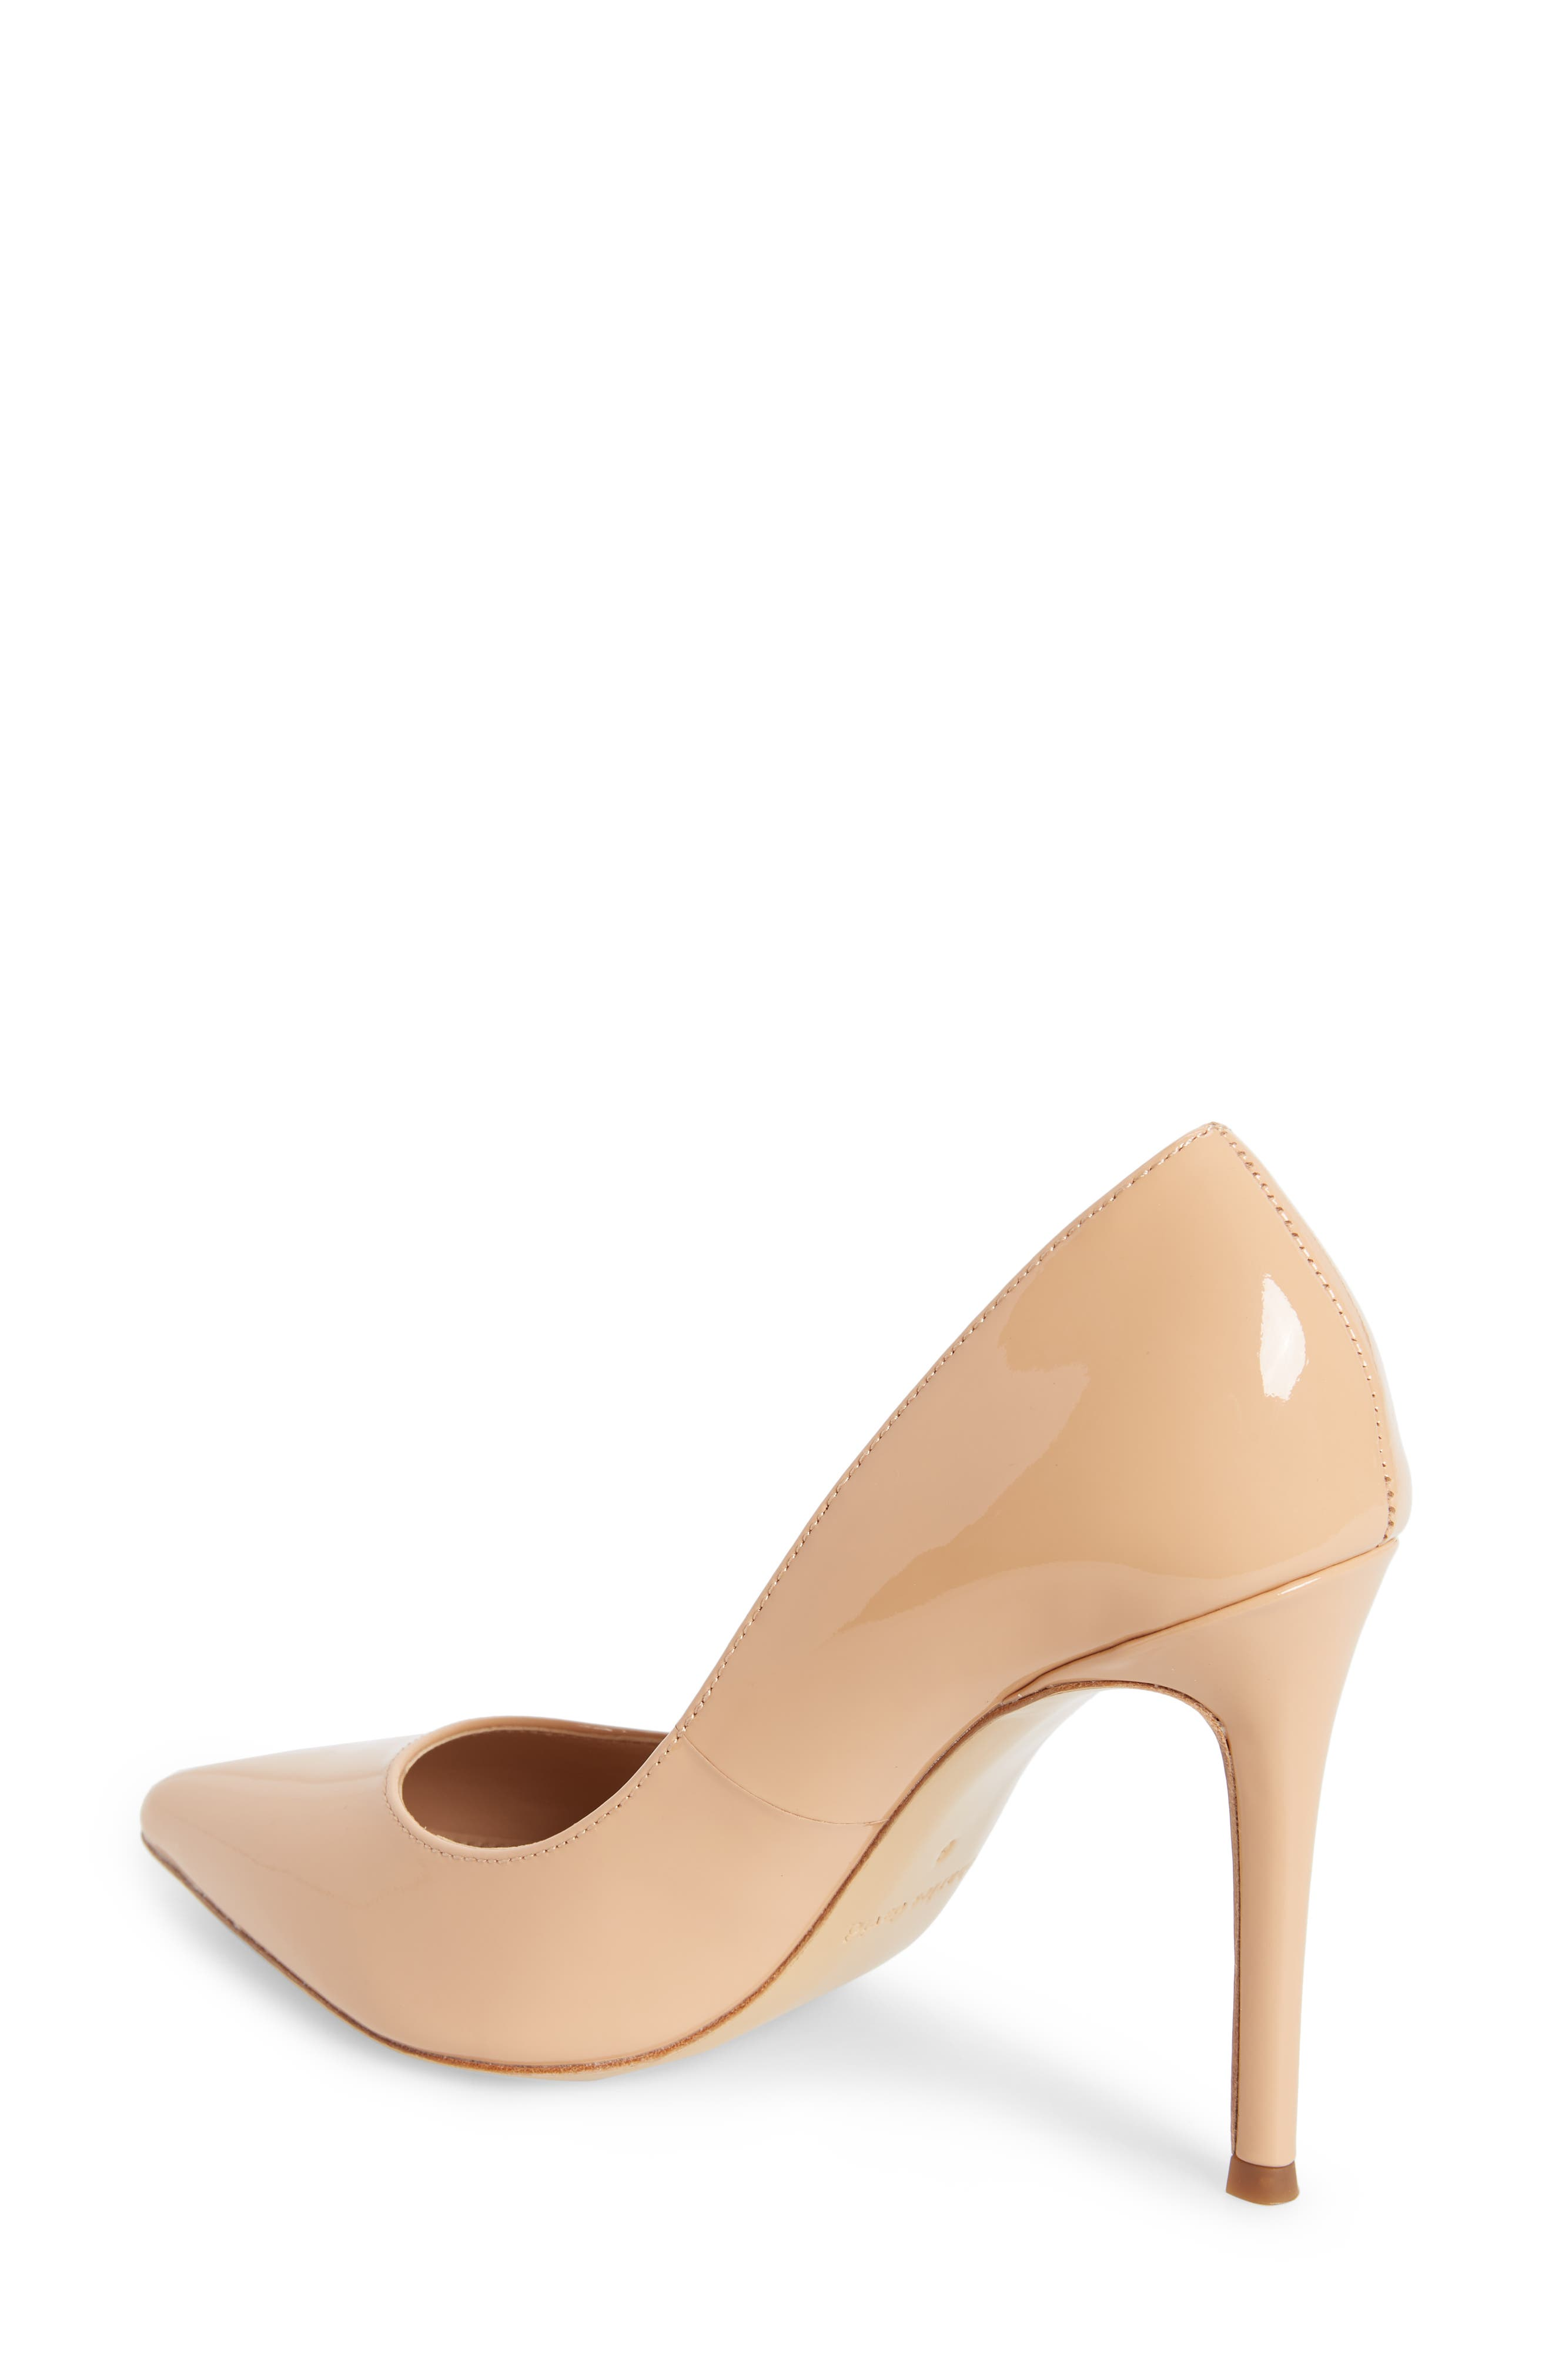 Calessi Pointy Toe Pump,                             Alternate thumbnail 2, color,                             PETAL PATENT LEATHER